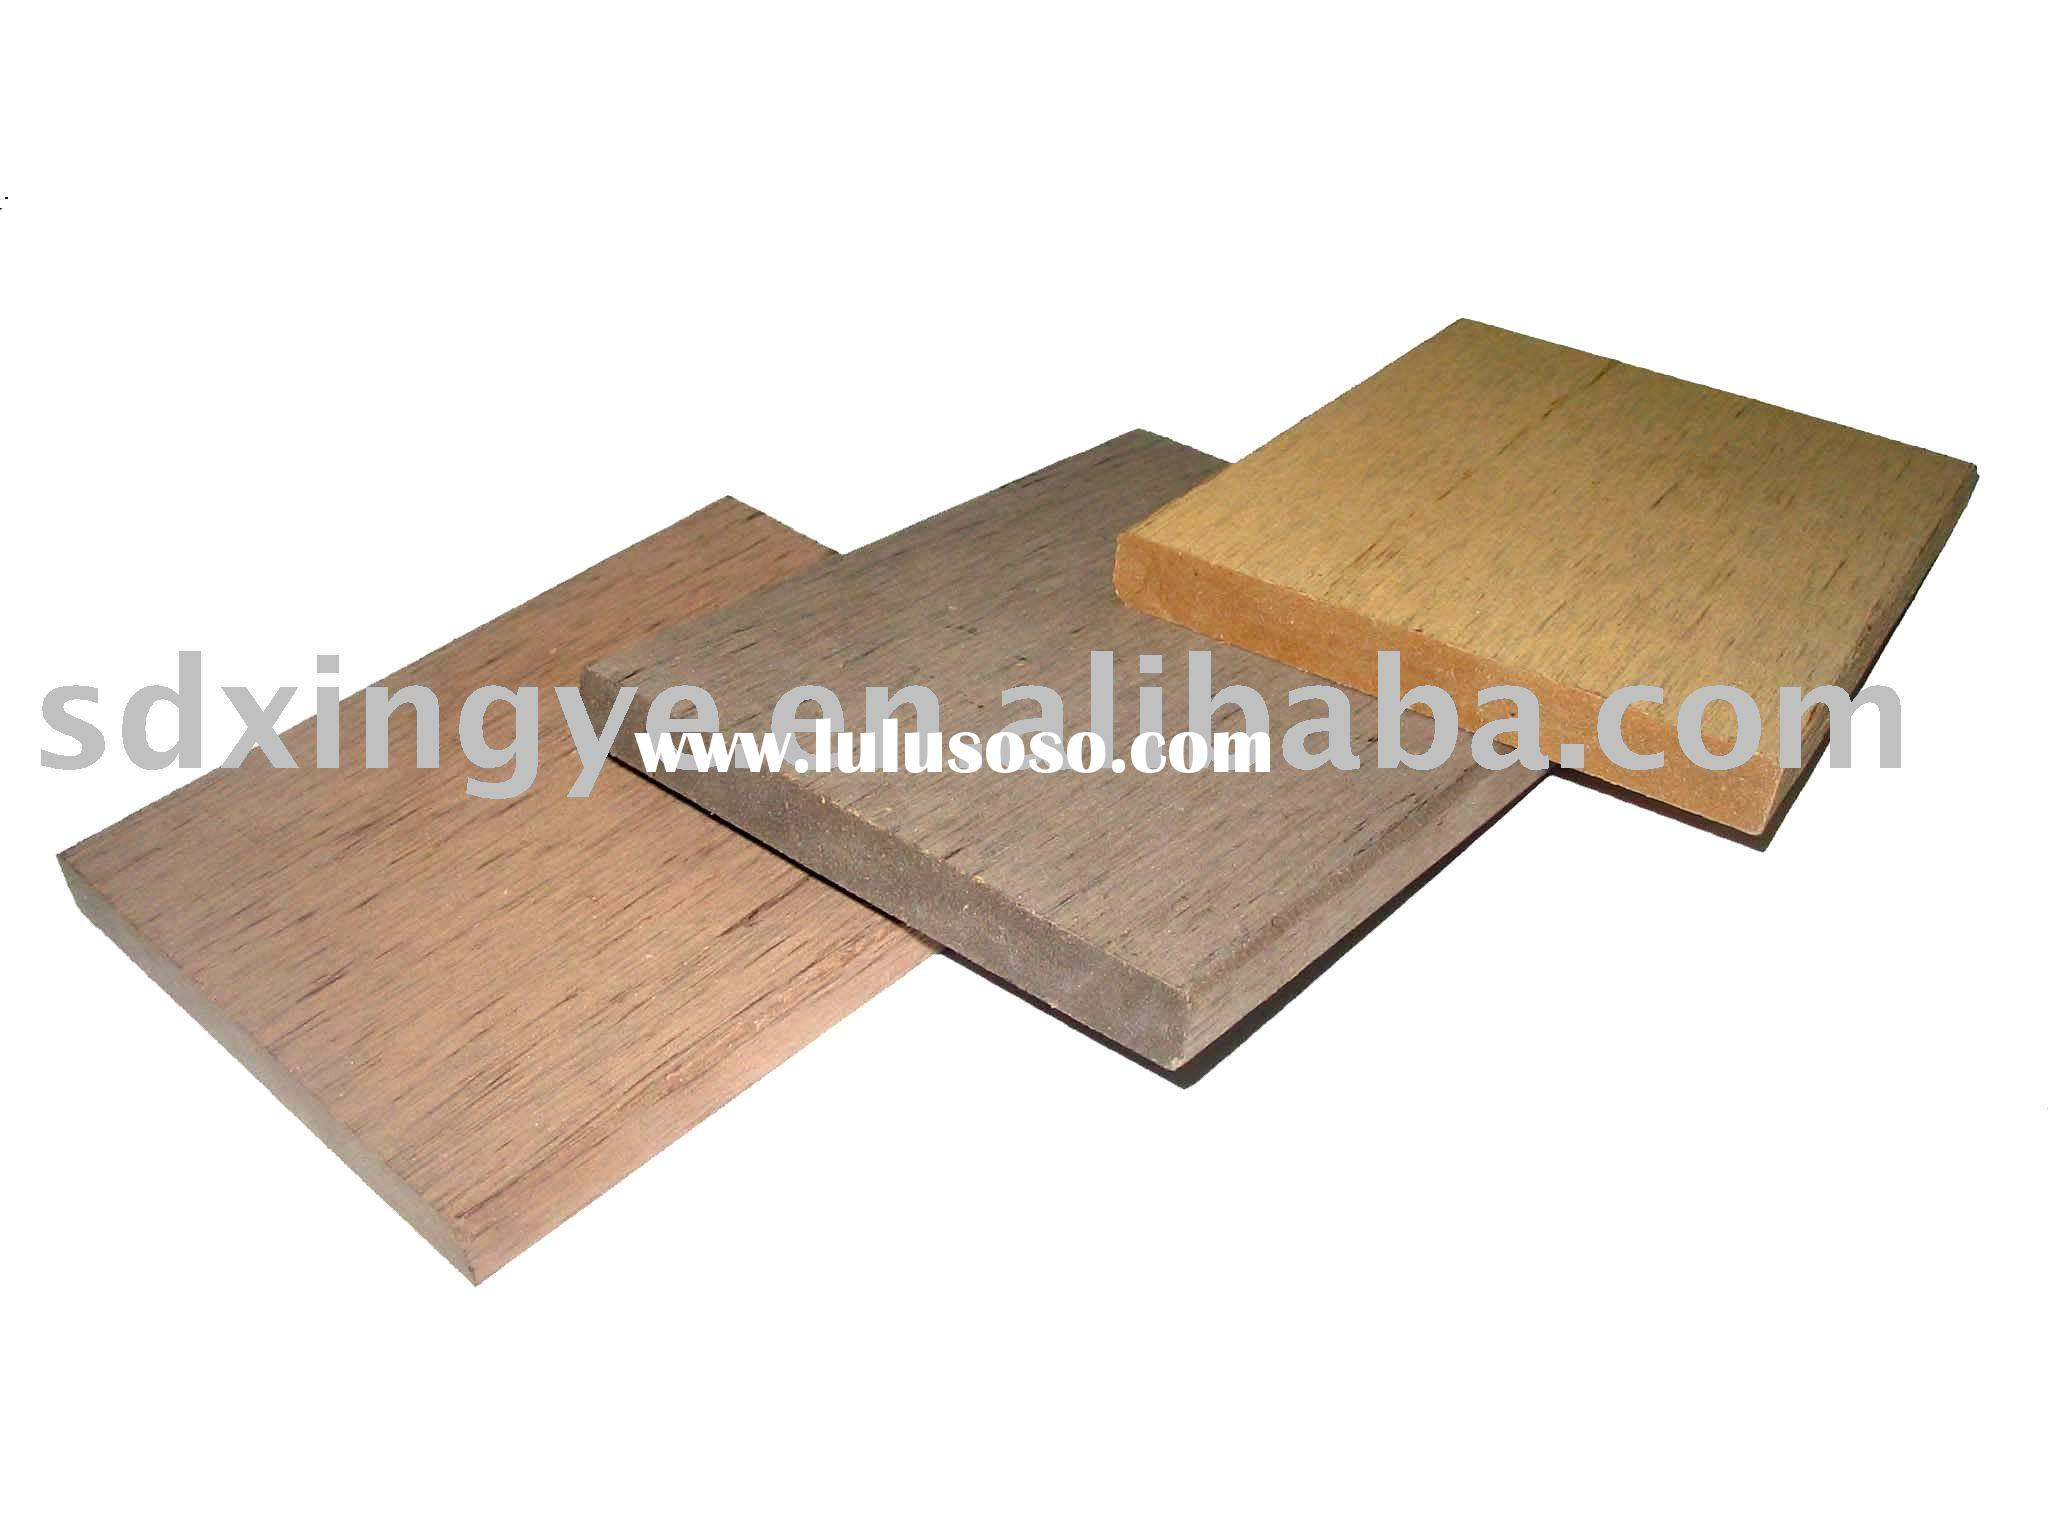 wood plastic,outdoor furniture with WPC